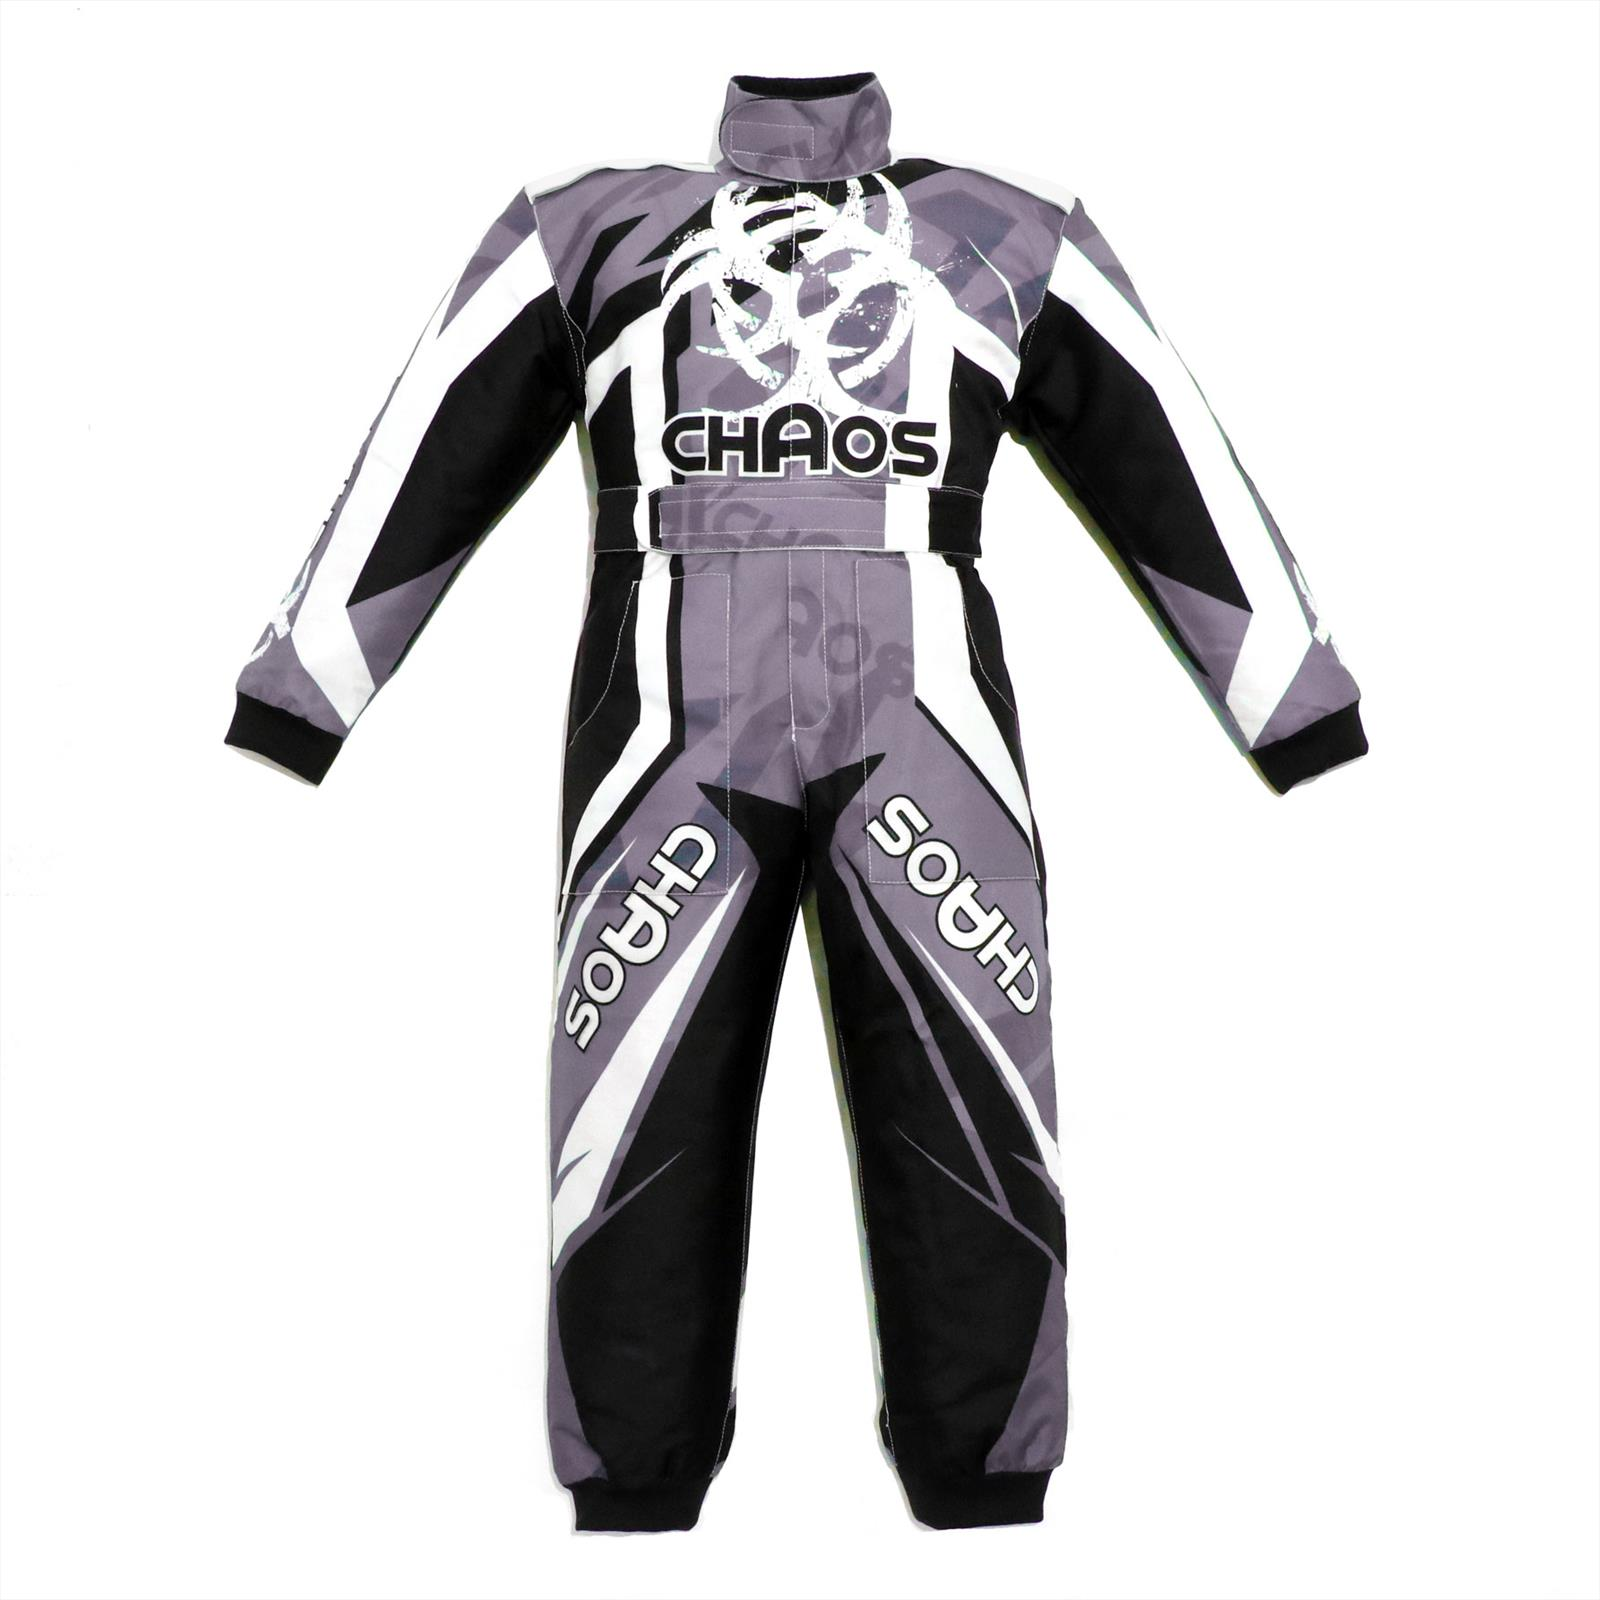 Chaos Toddlers Off Road Motocross Suit Black